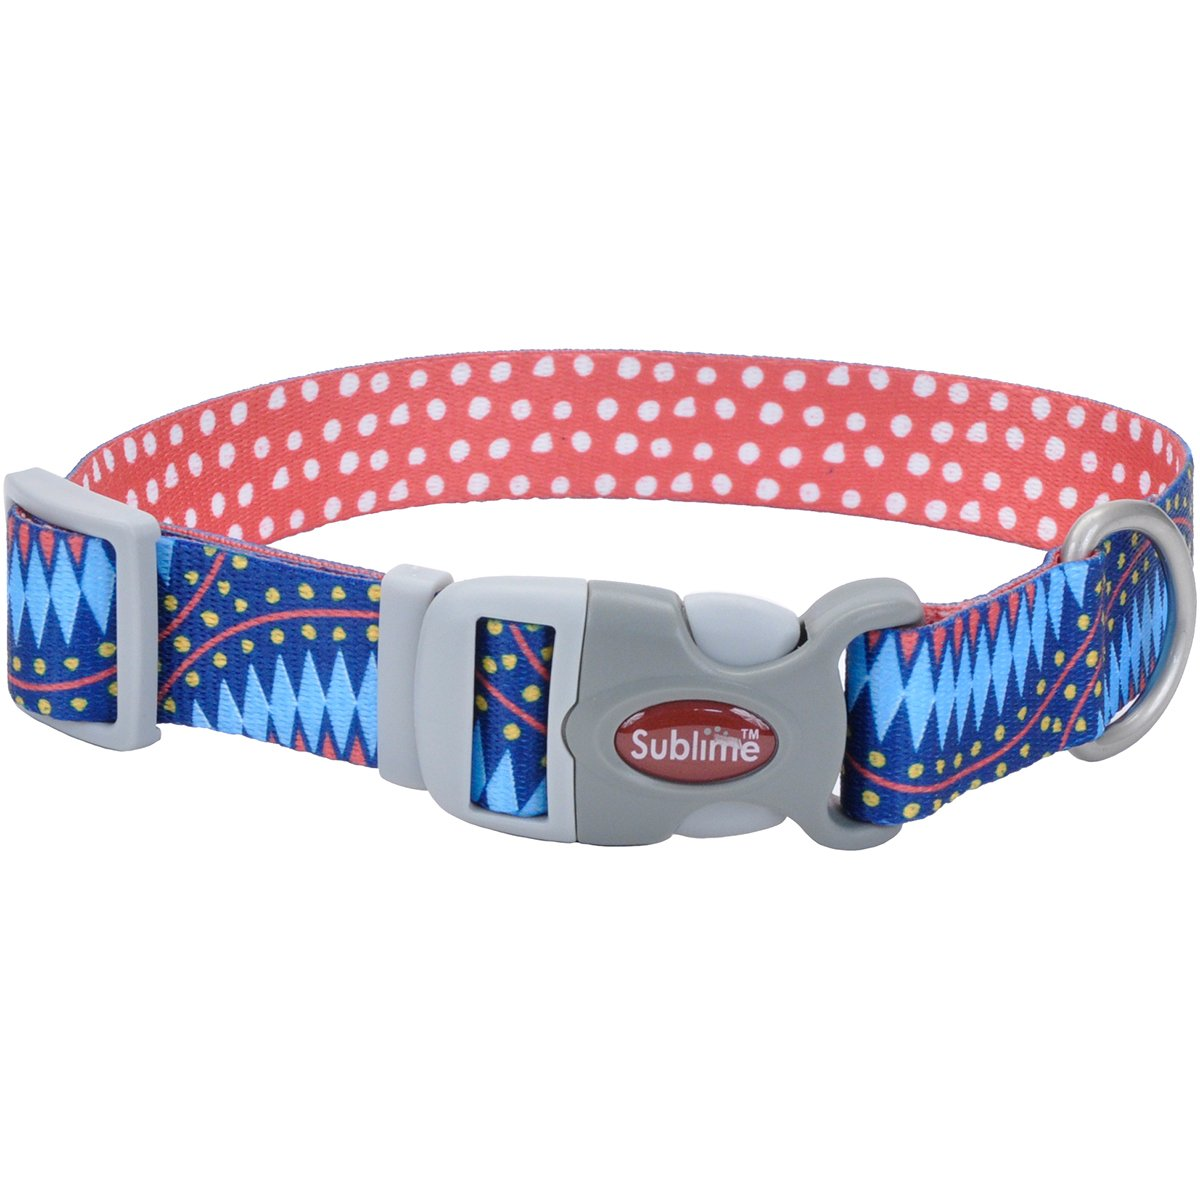 Coastal Pet Products 23921 BDD26 Sublime 1.5  Dog Collar-bluee Diamonds W Dots, Neck Size Harnesses, 18-26